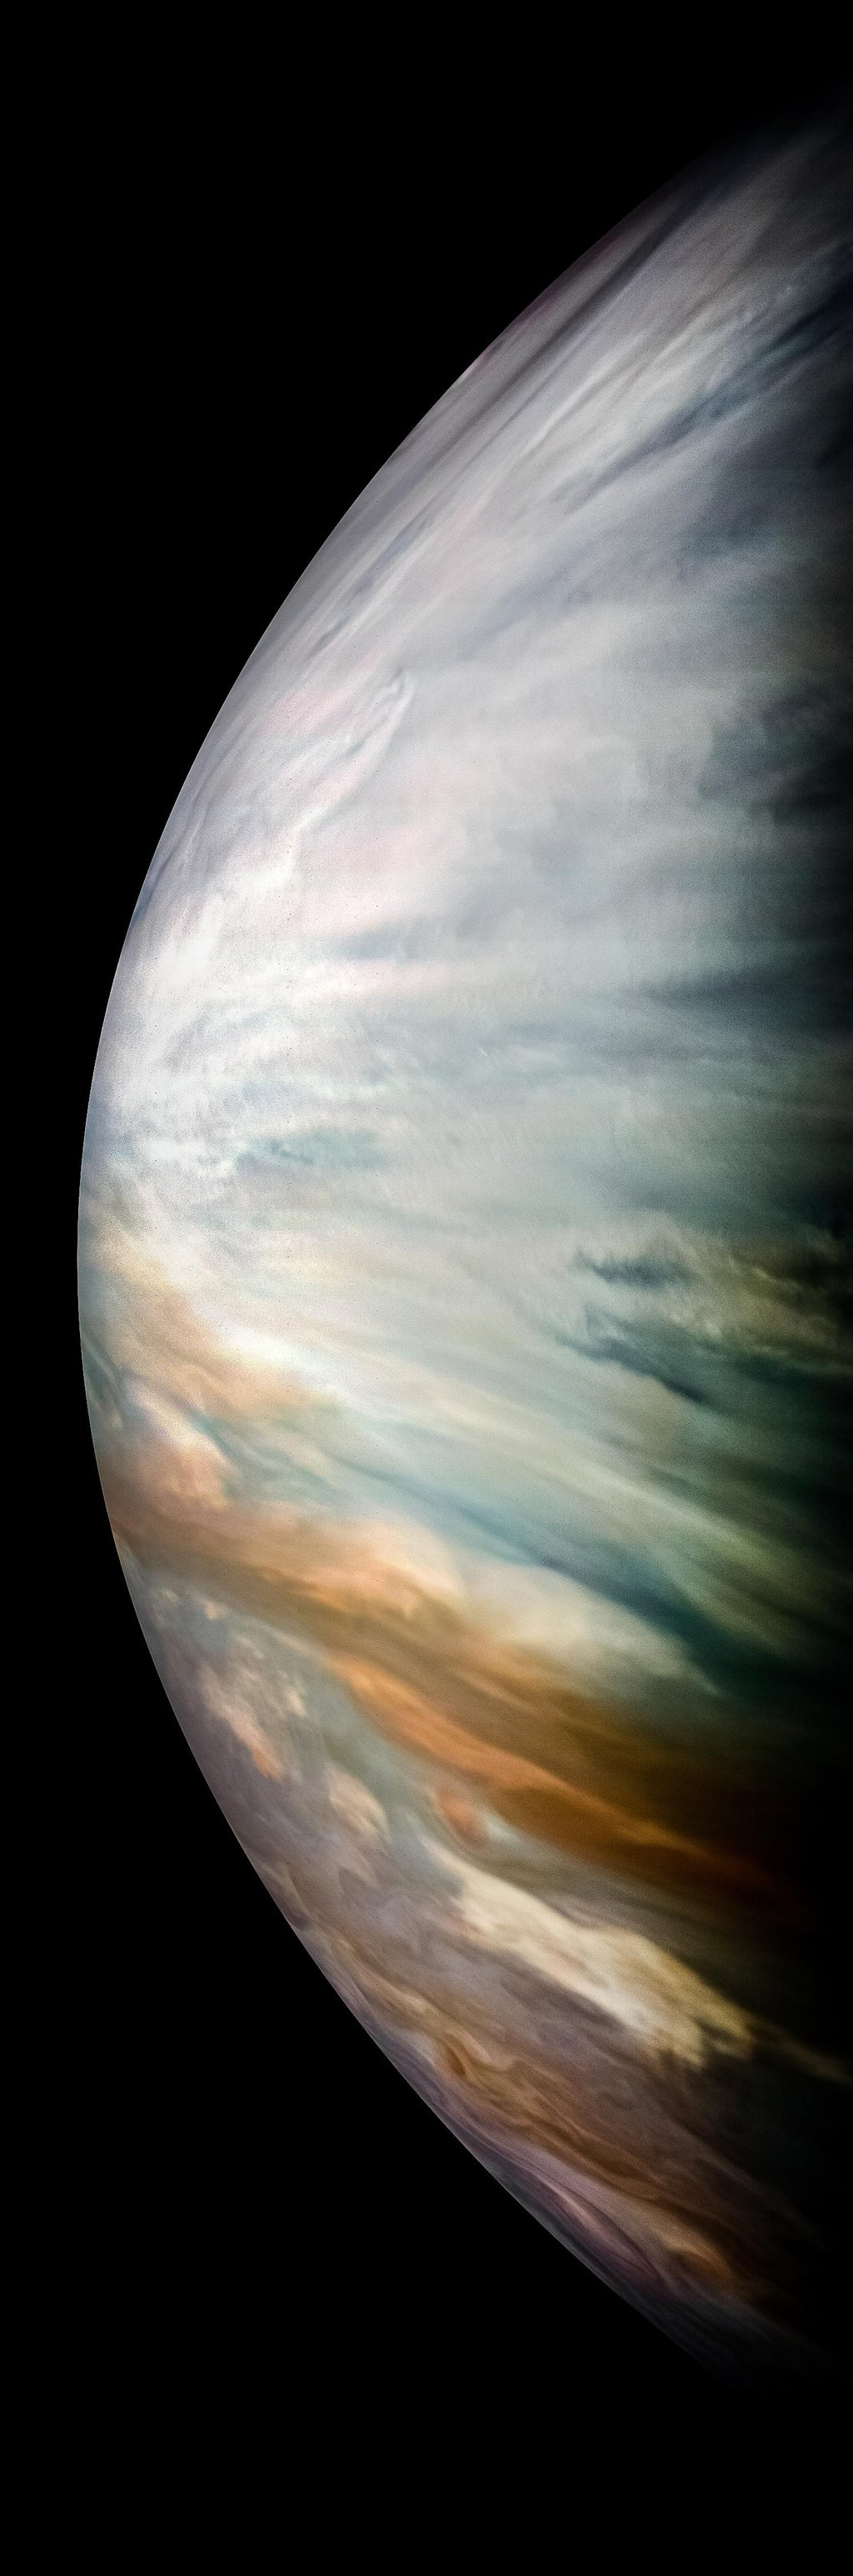 Thick white clouds are present in this JunoCam image of Jupiter's equatorial zone, taken by NASA's Juno Spacecraft.